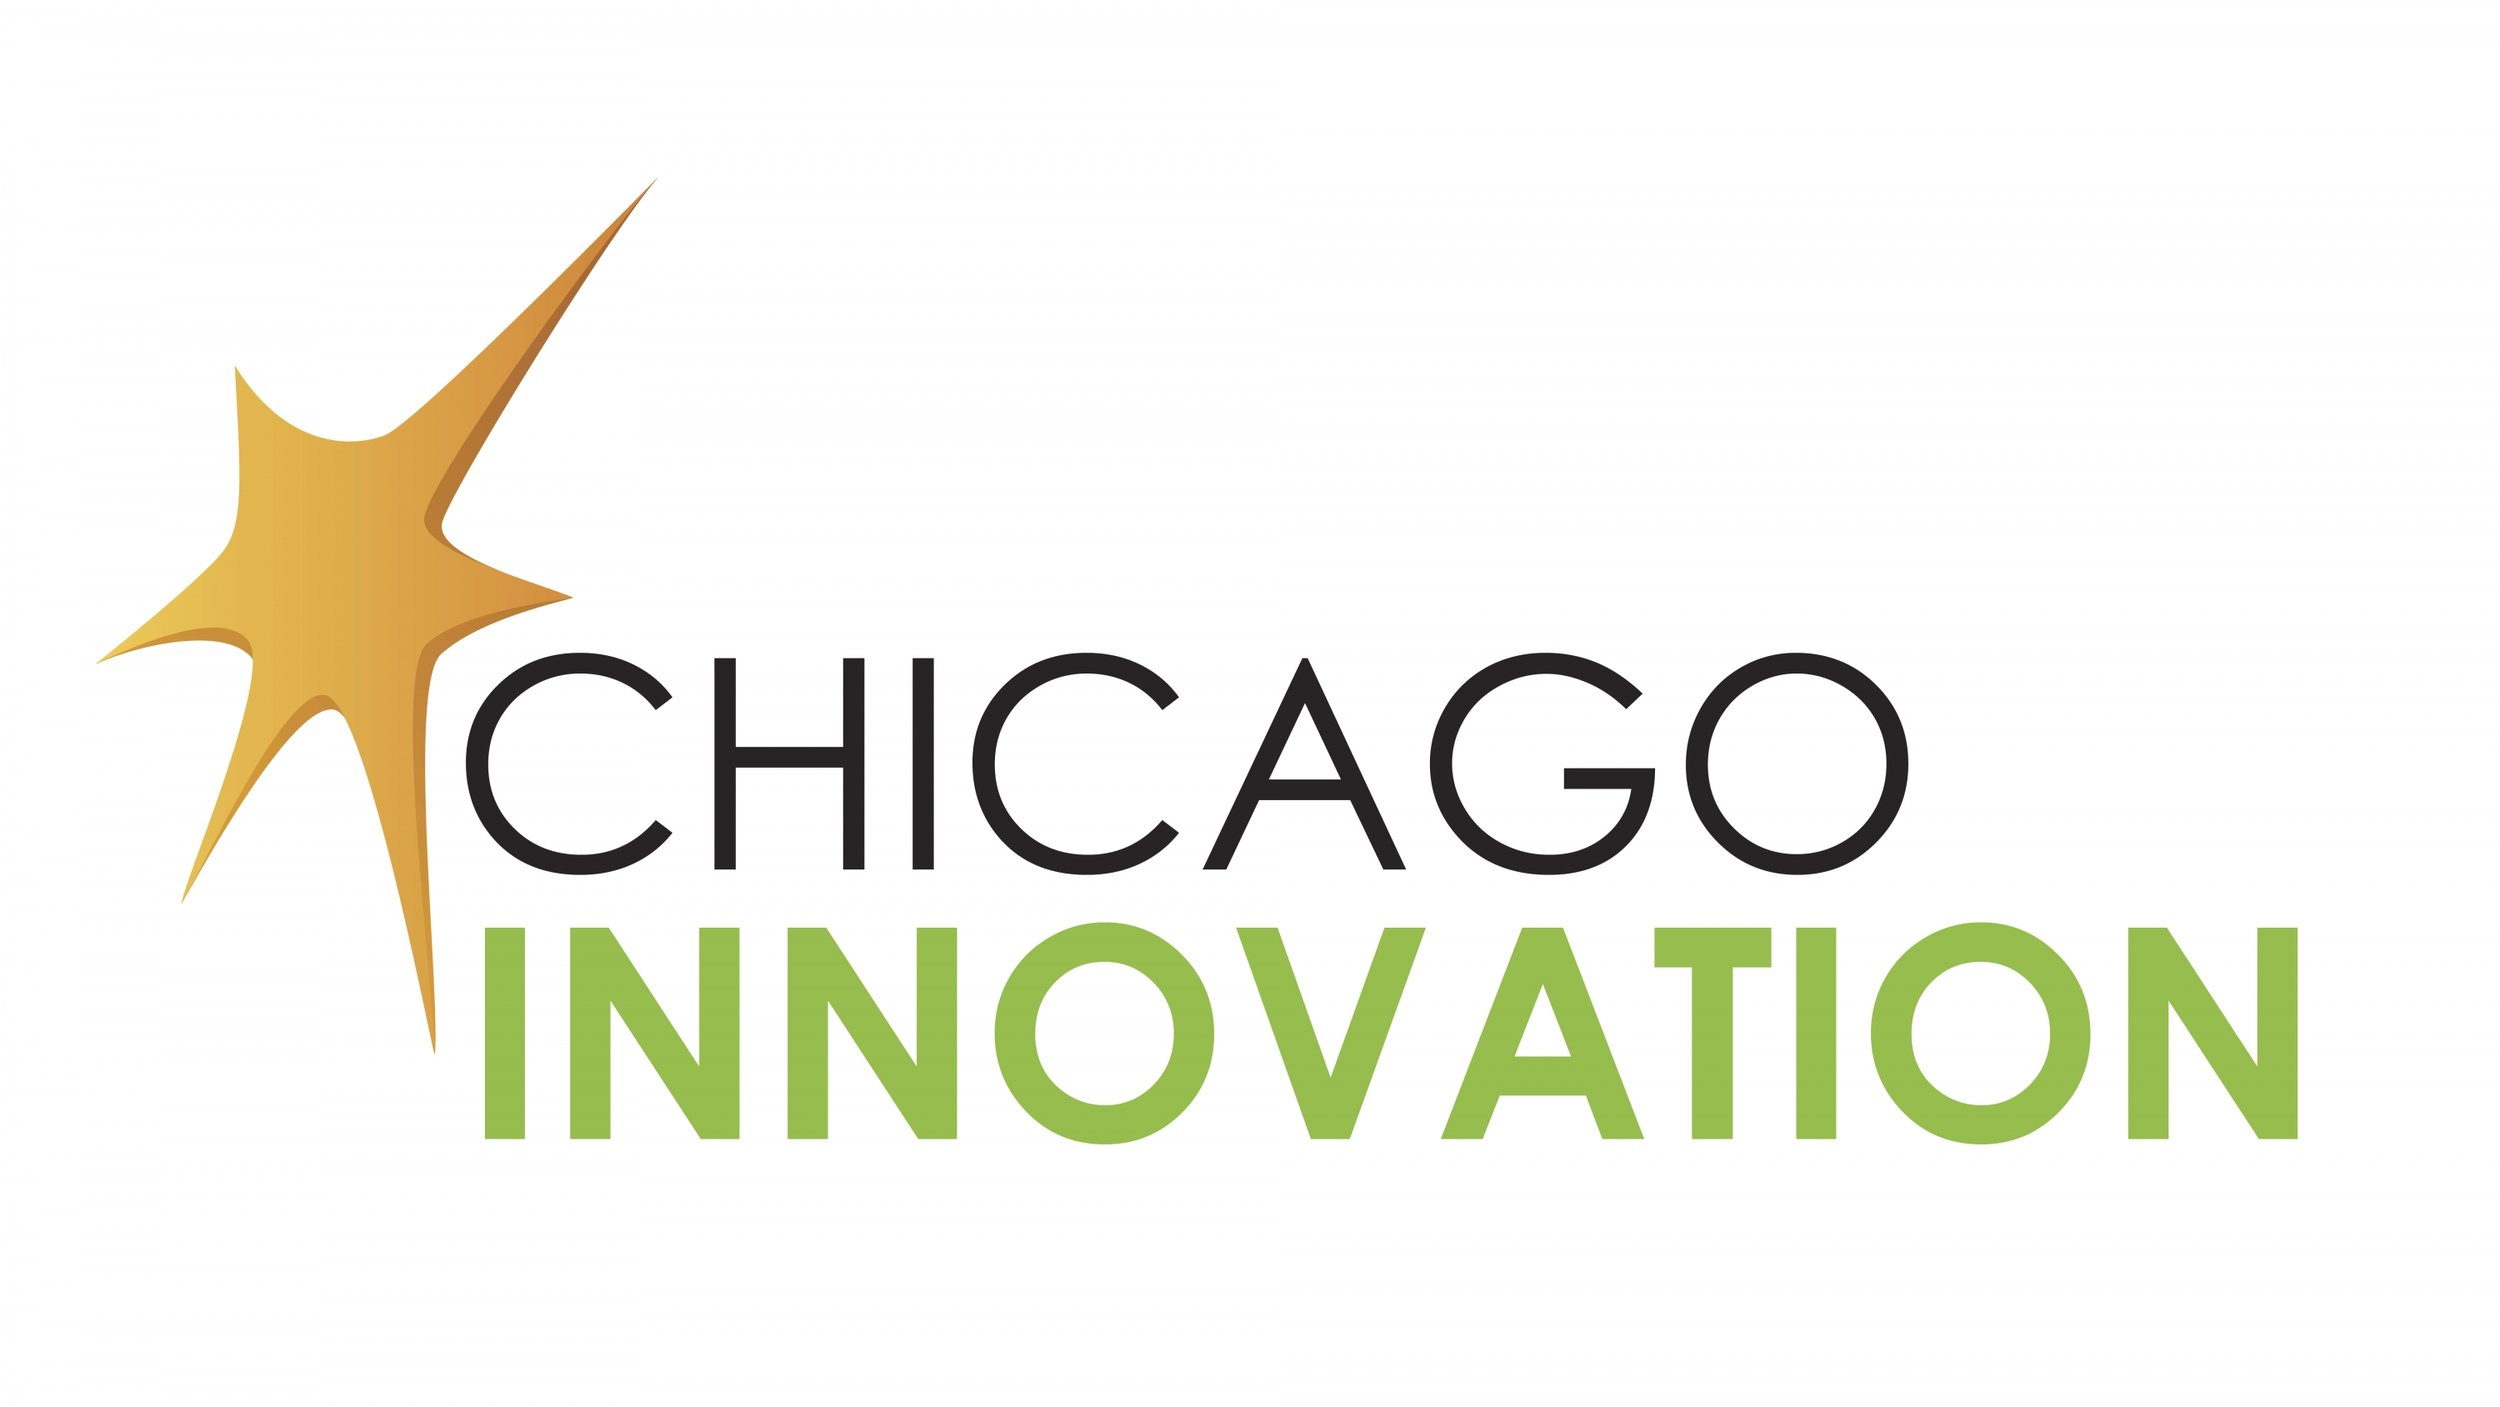 Chicago Innovation logo (vert JPG).jpg